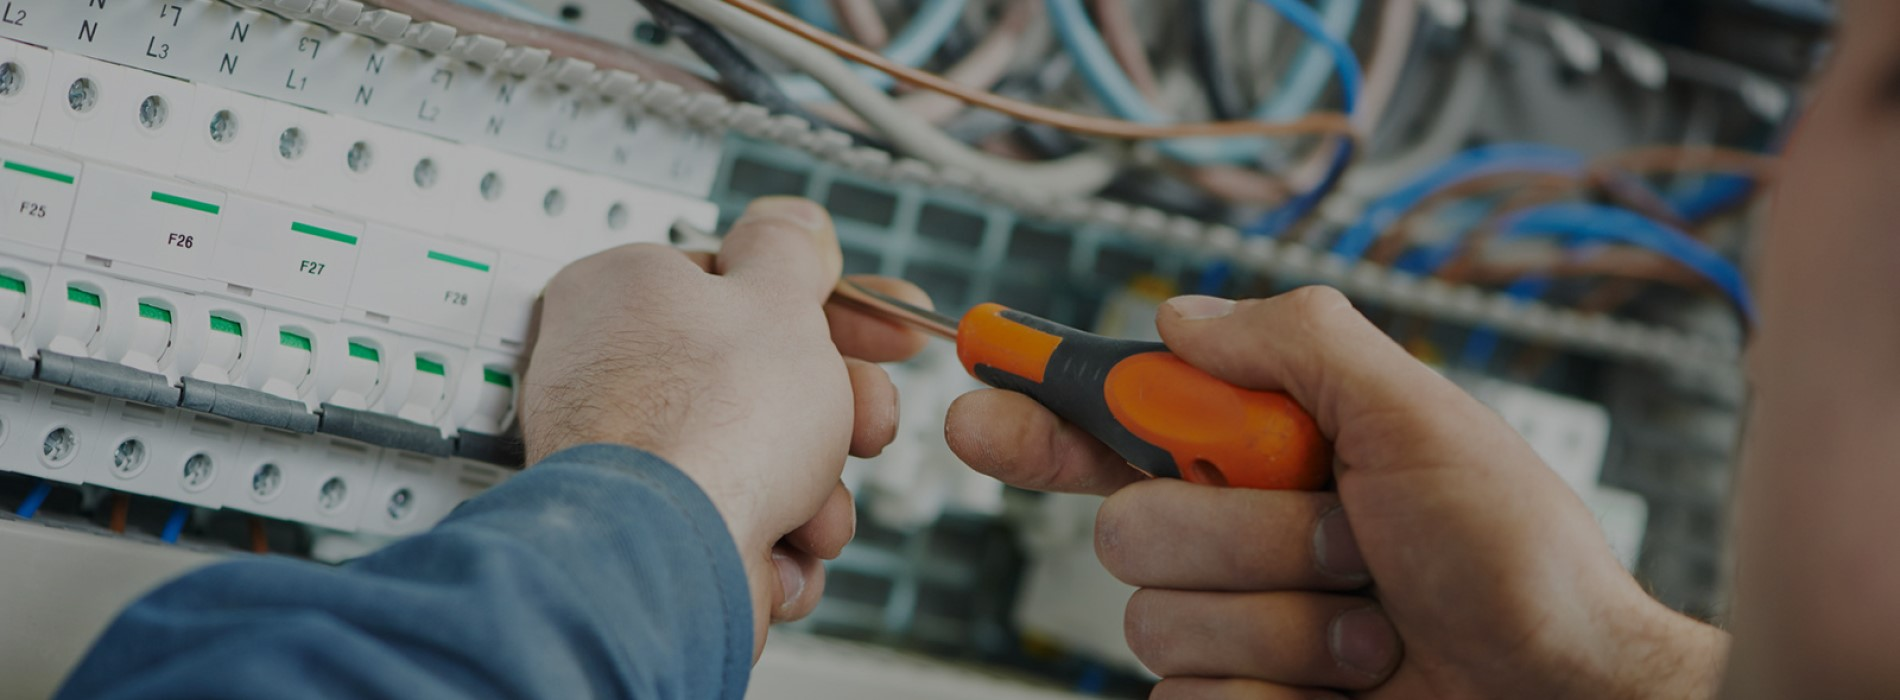 Inspection & Testing - Electricians in Worksop